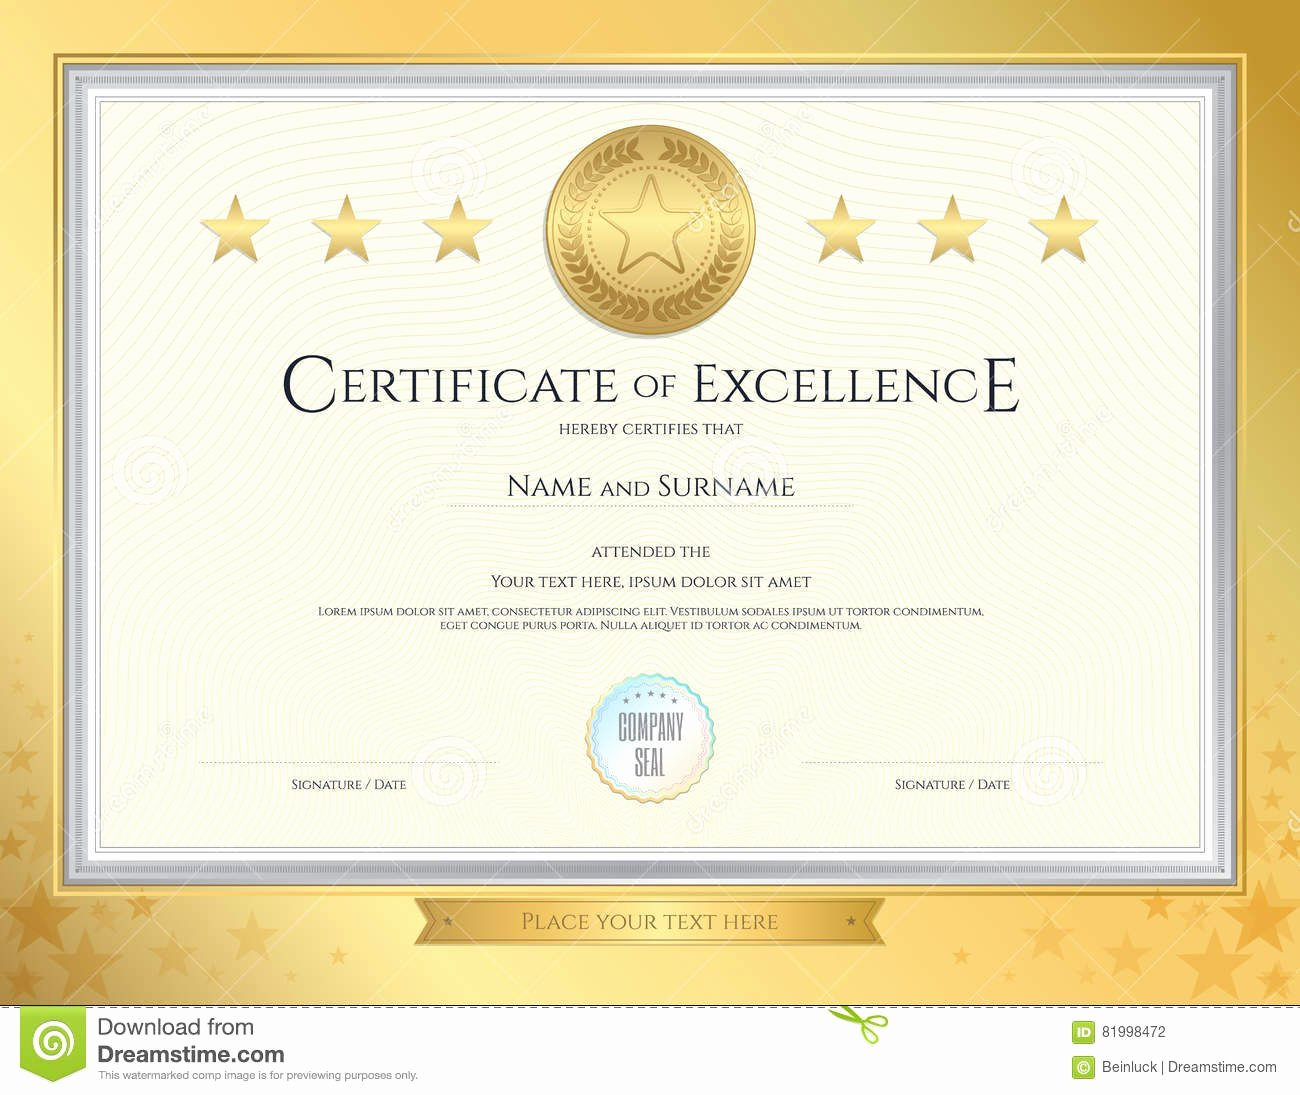 stock illustration elegant certificate template excellence achievement appreciation pletion gold border background image